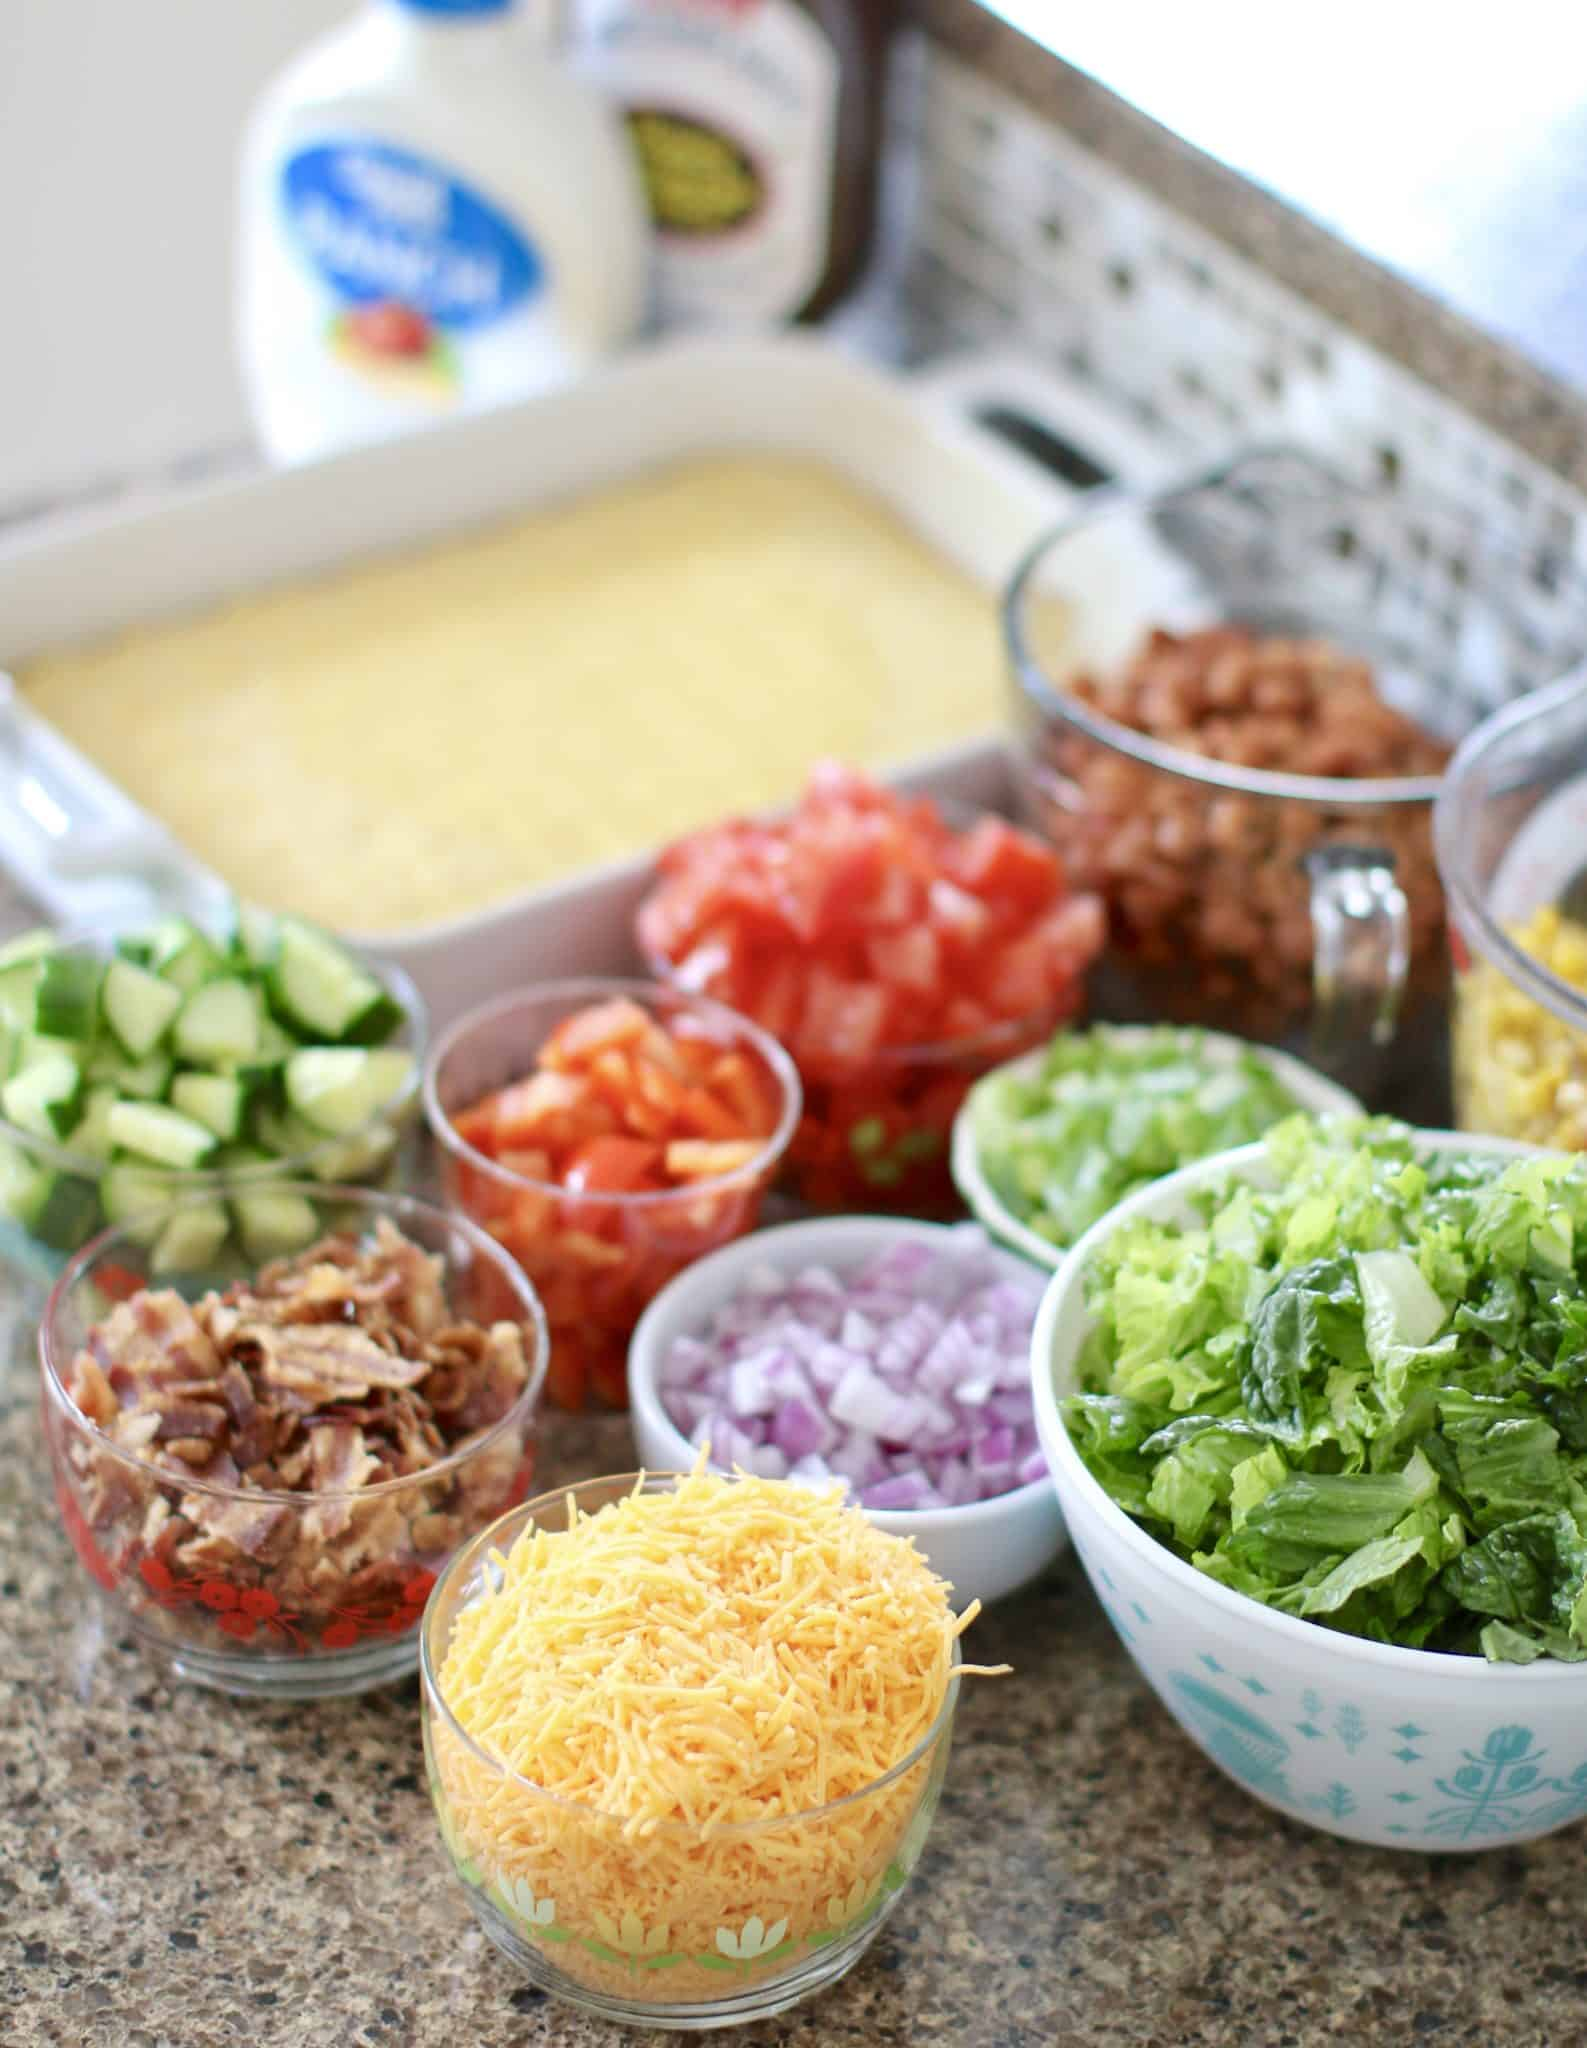 cornbread salad ingredients: cornbread mix, pinto beans, corn, Roma tomatoes, red bell pepper, cucumber, red onion, ranch dressing, barbecue sauce, romaine lettuce heart, shredded cheddar cheese, bacon, sliced green onion.